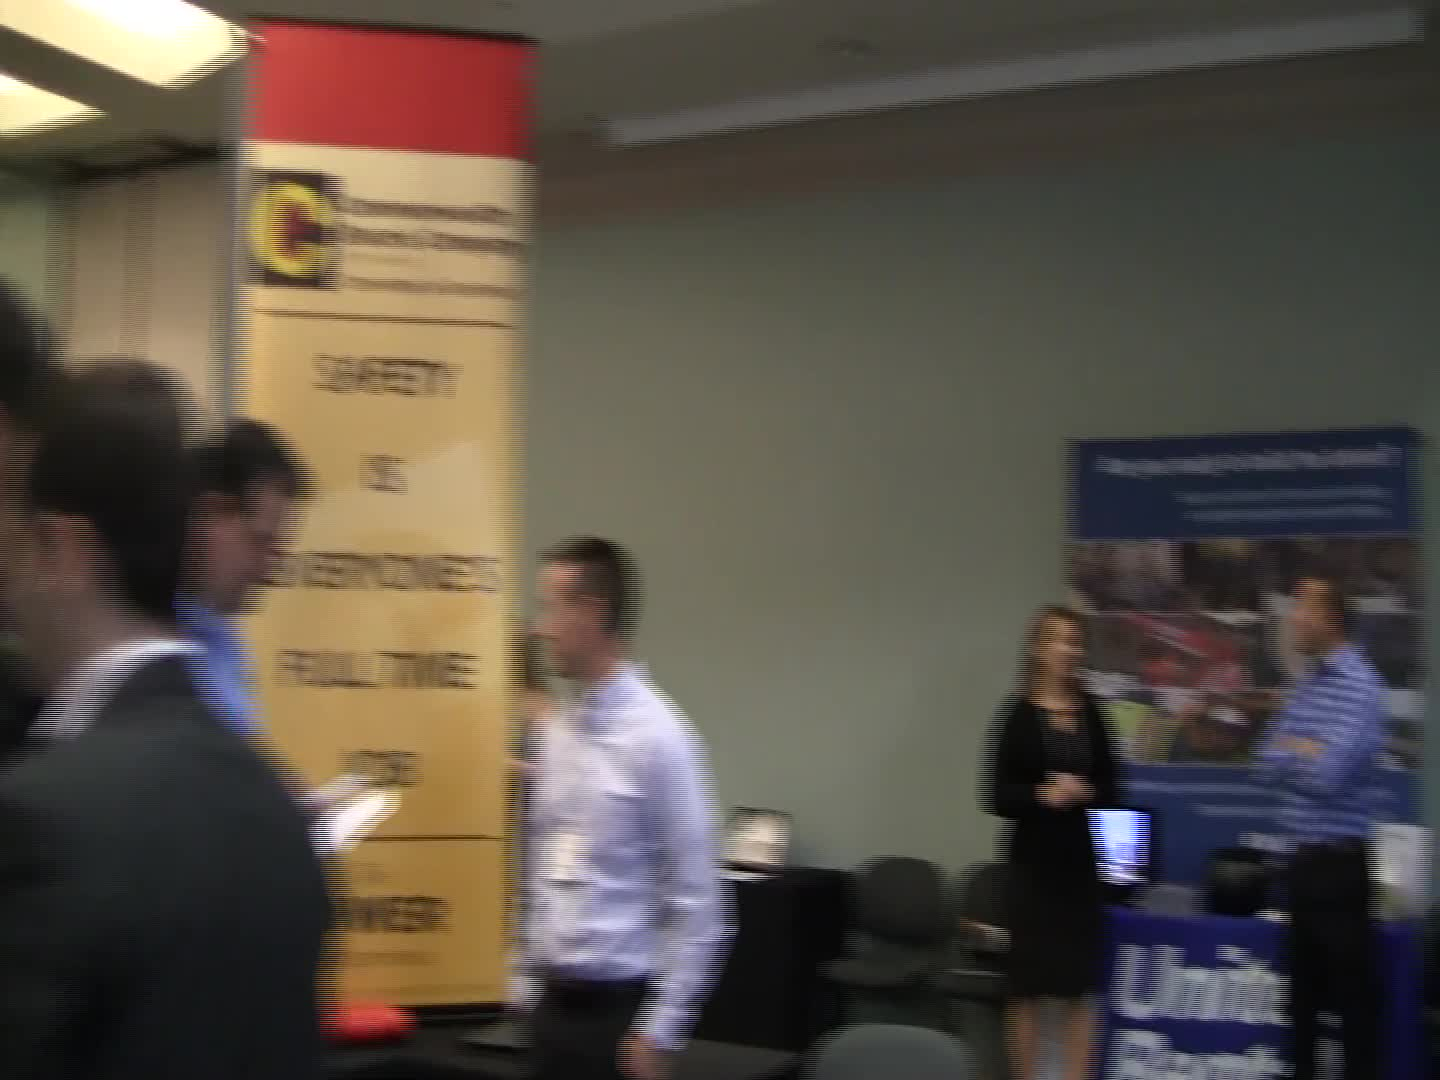 Durham Career Fair - Random Video 2